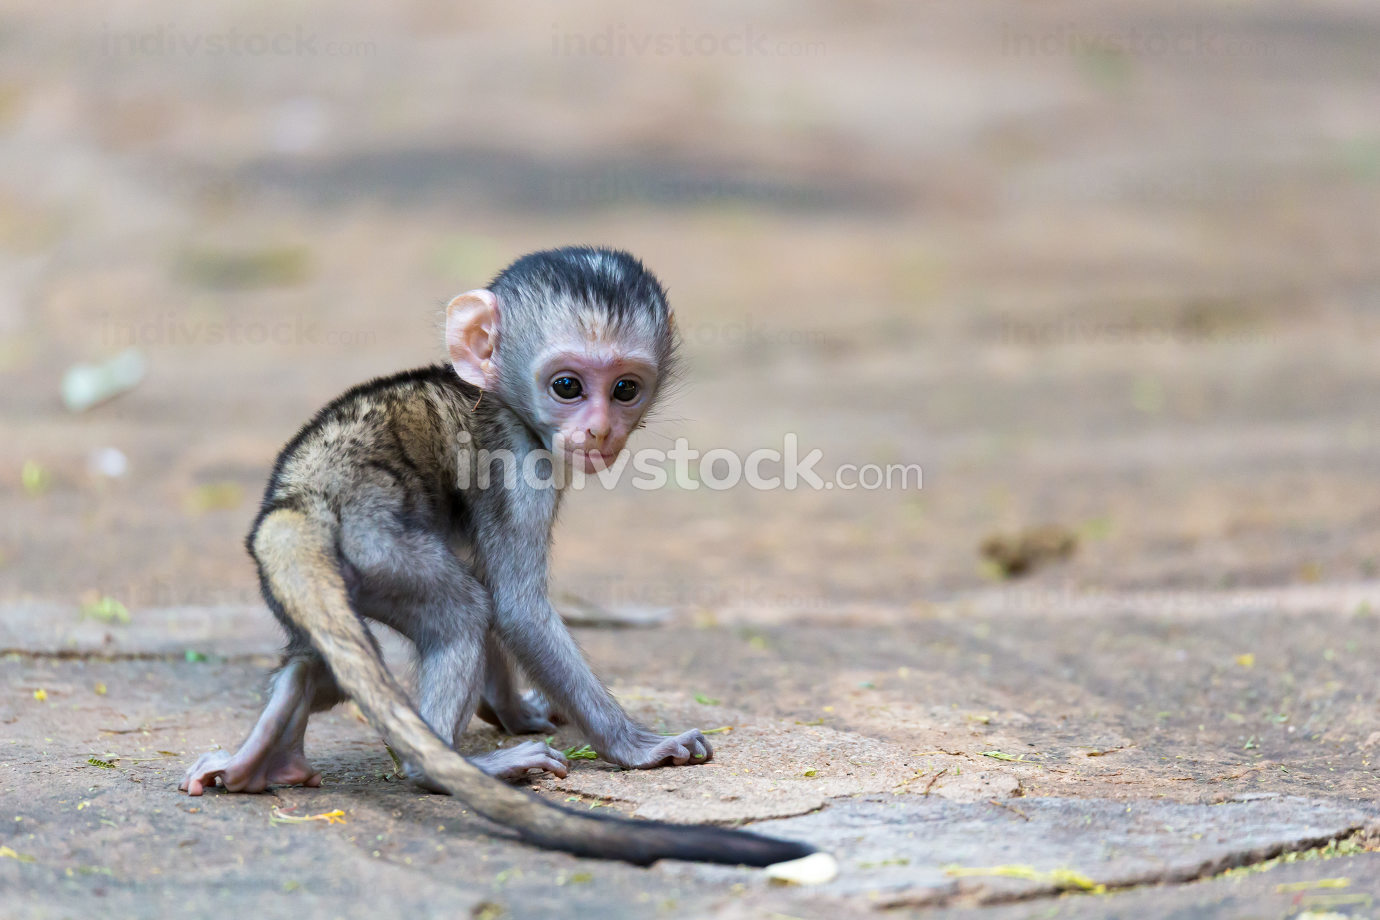 A little funny monkey is playing on the floor or on the tree